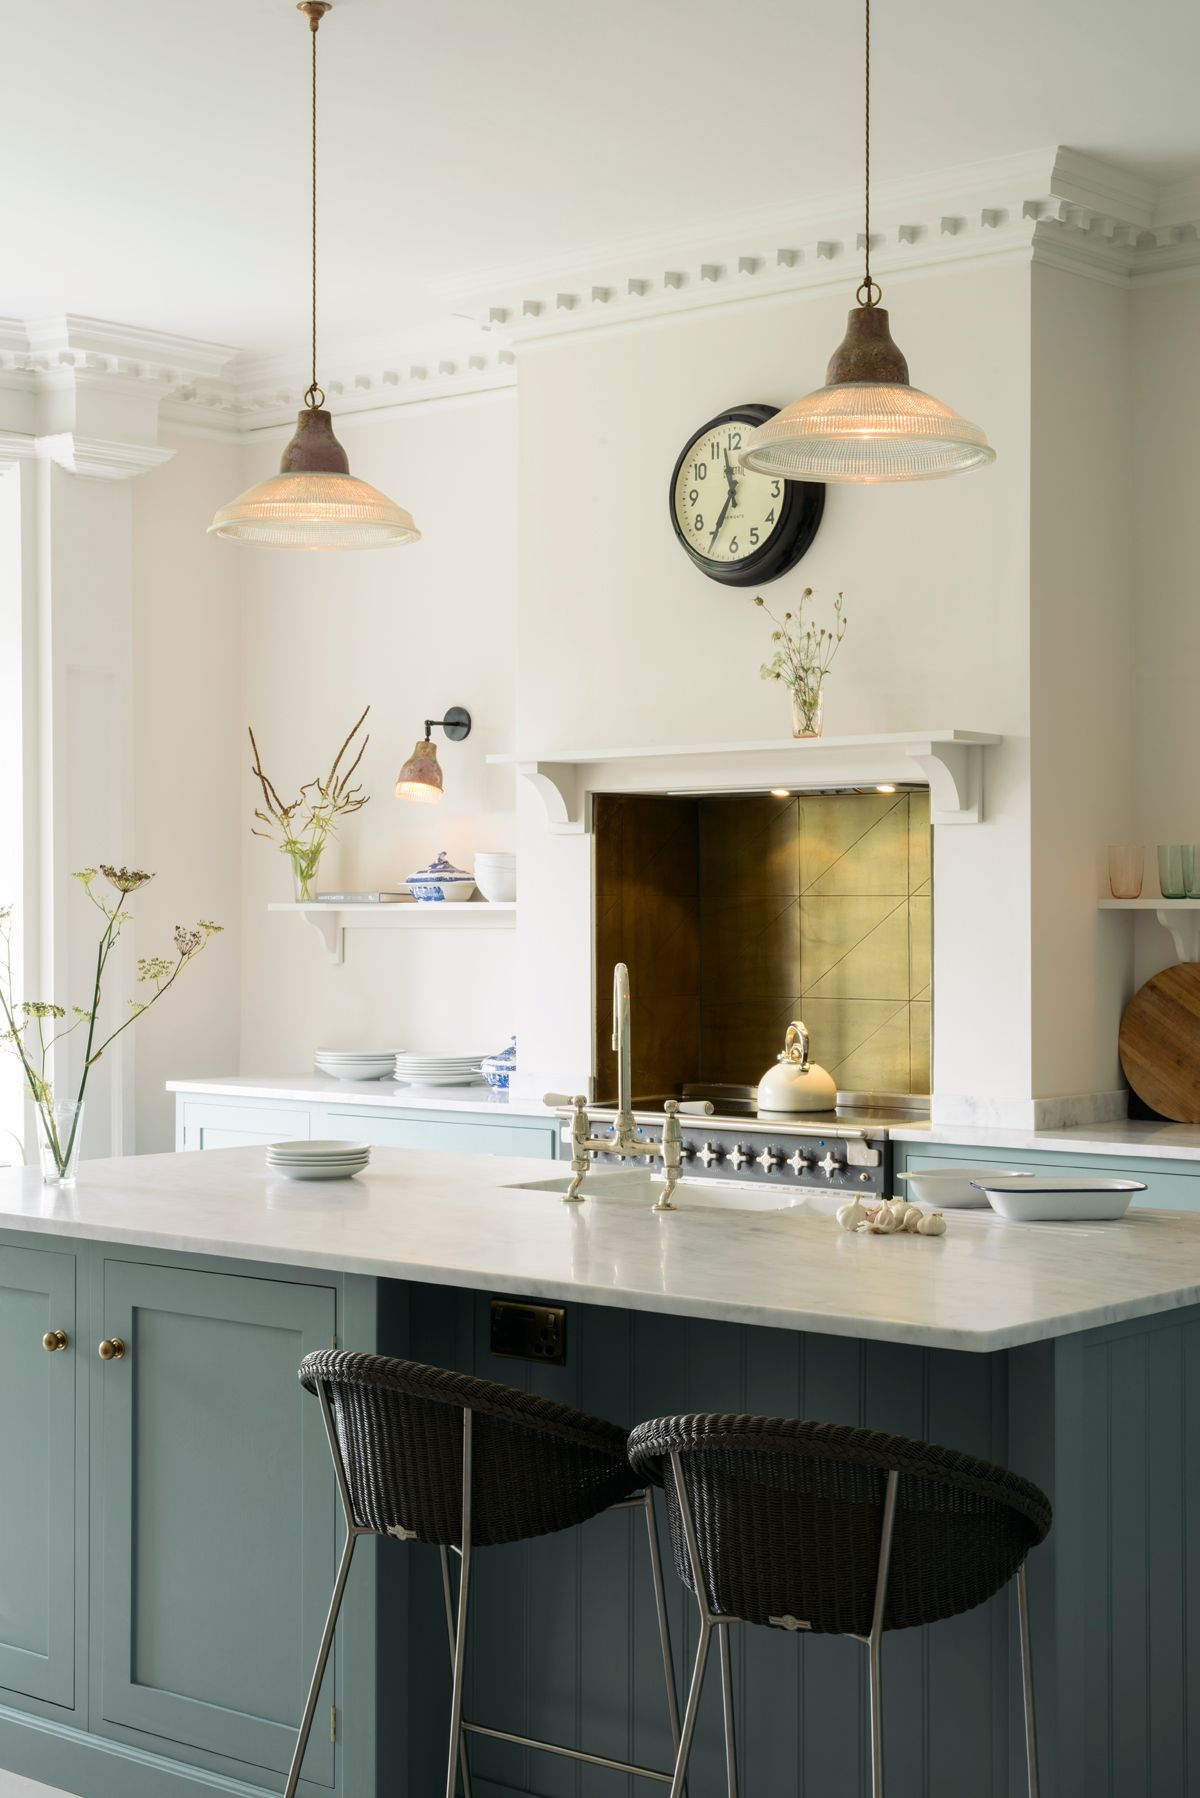 This Is The Lighting Design You Have Been Looking For Devol Kitchens Kitchen Interior Kitchen Design